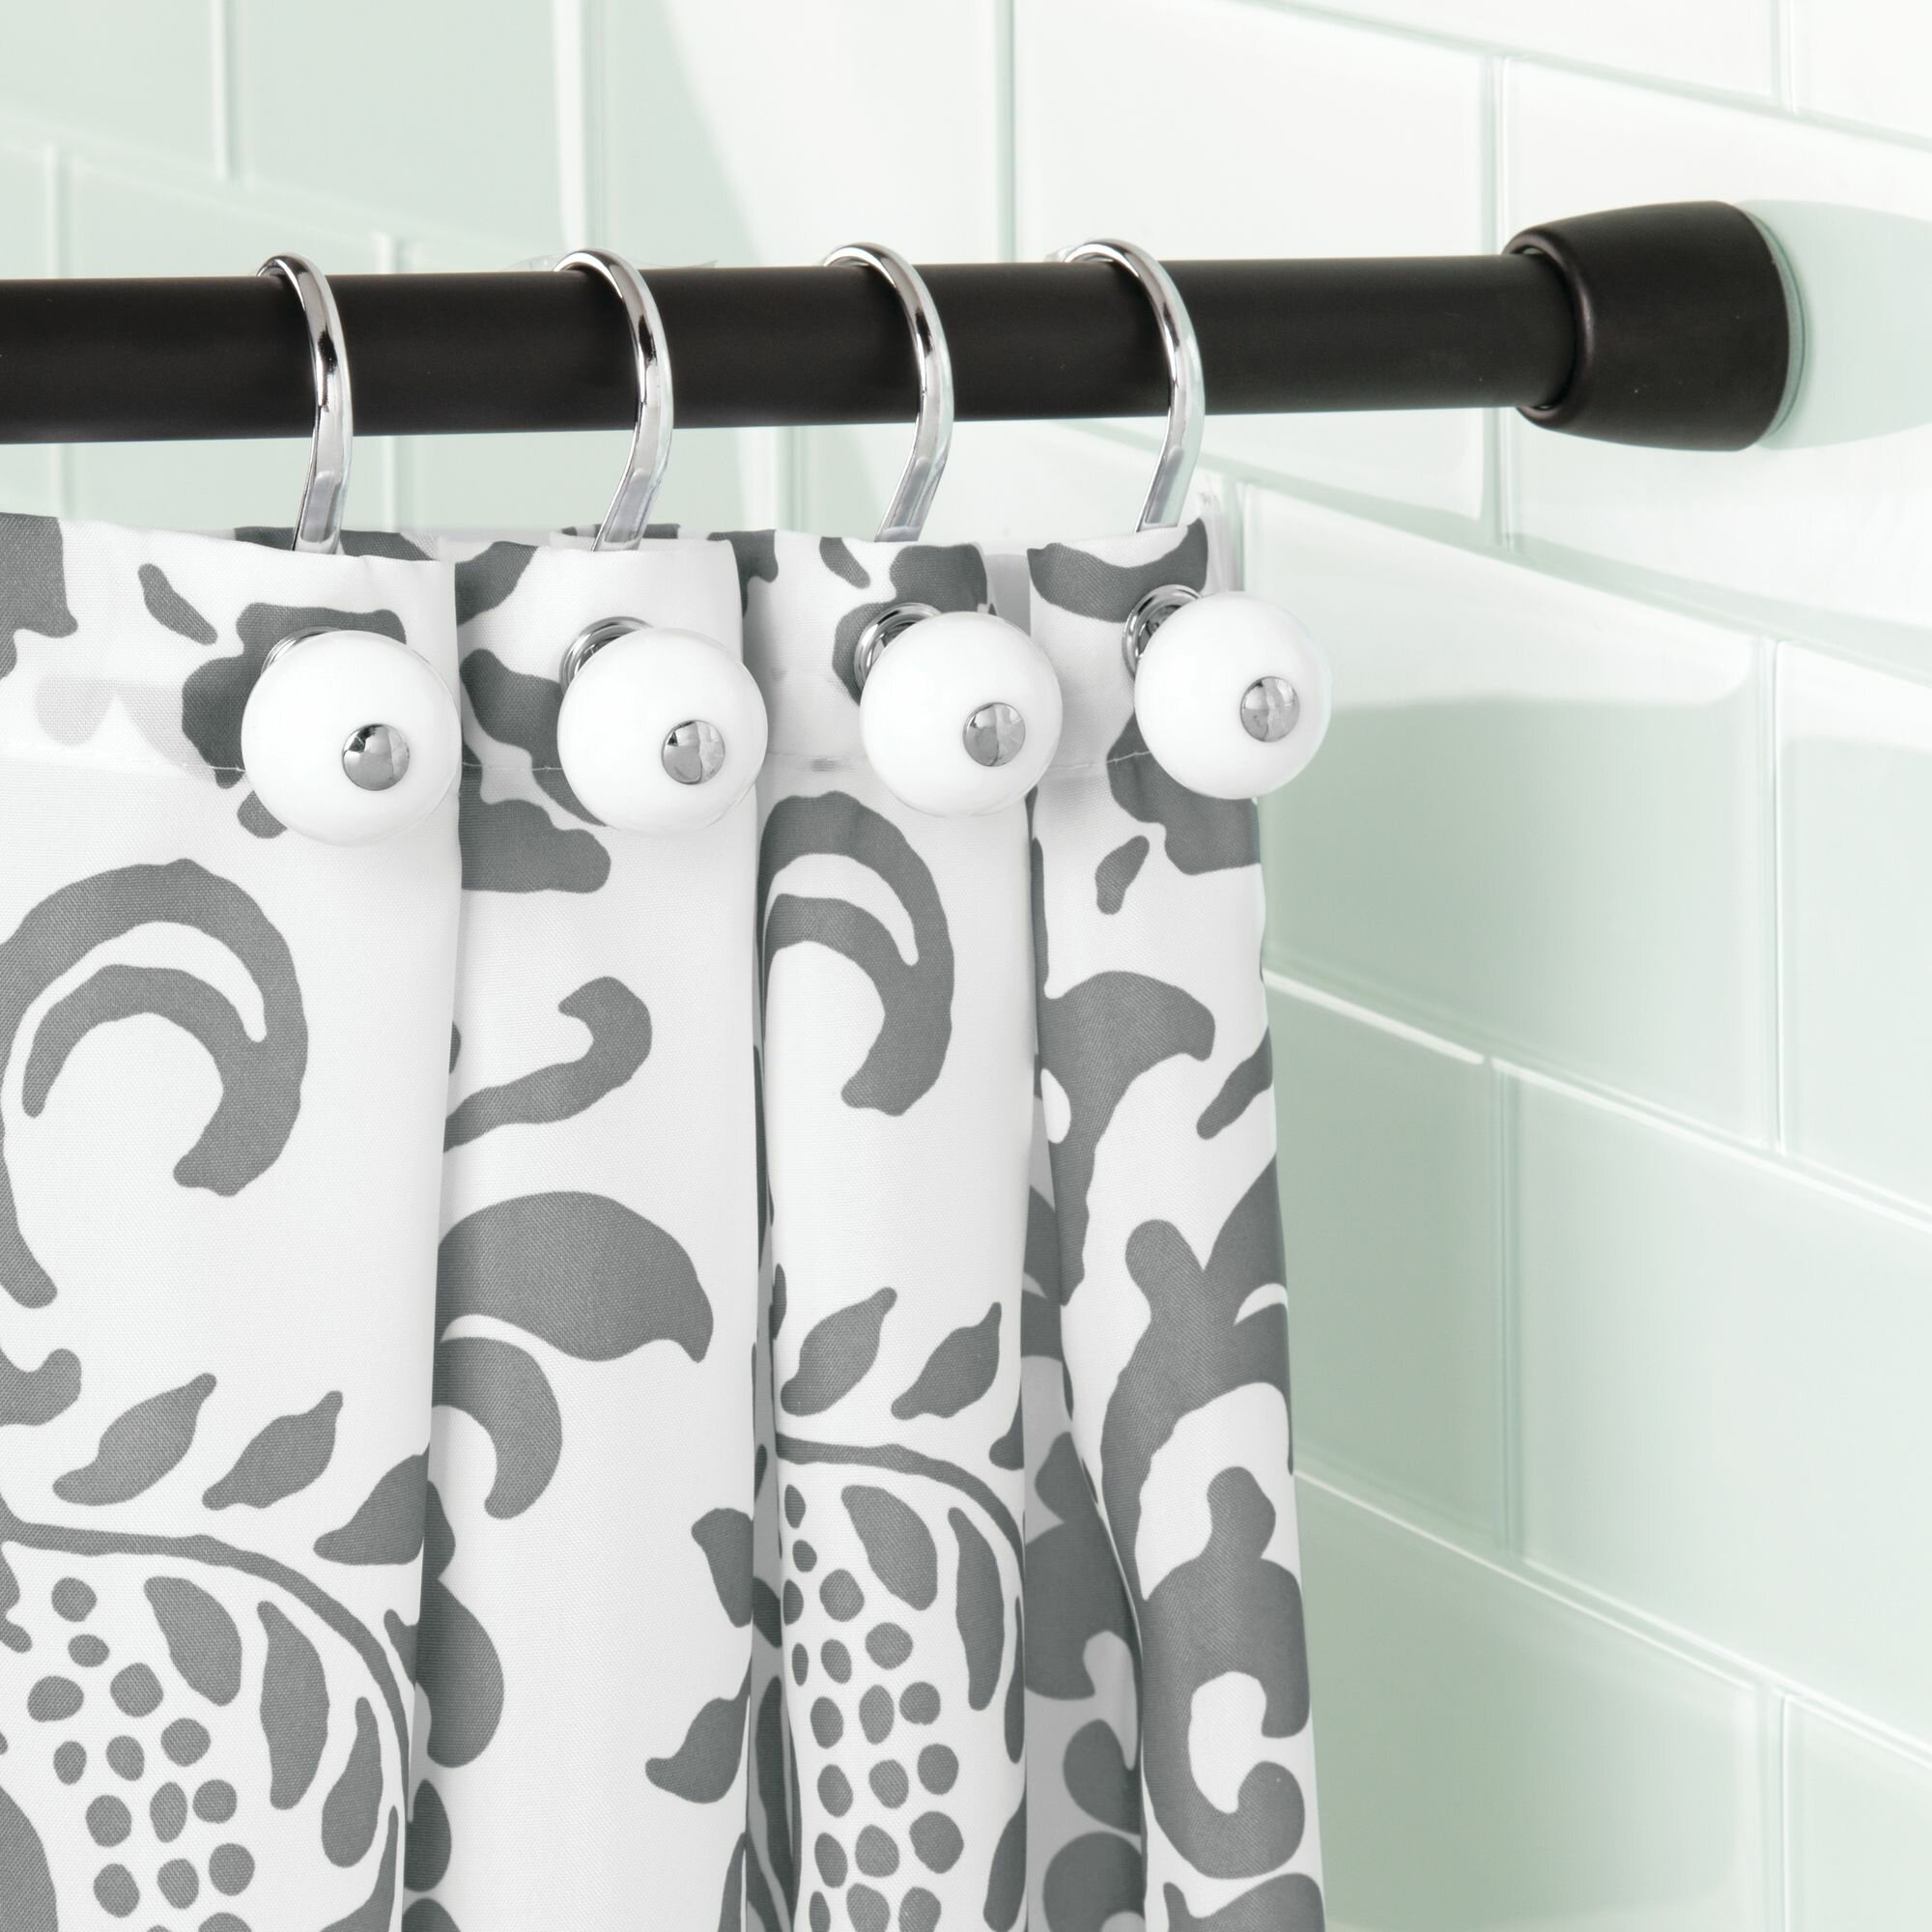 Interdesign Cameo 26 3 Adjustable Straight Tension Shower Curtain